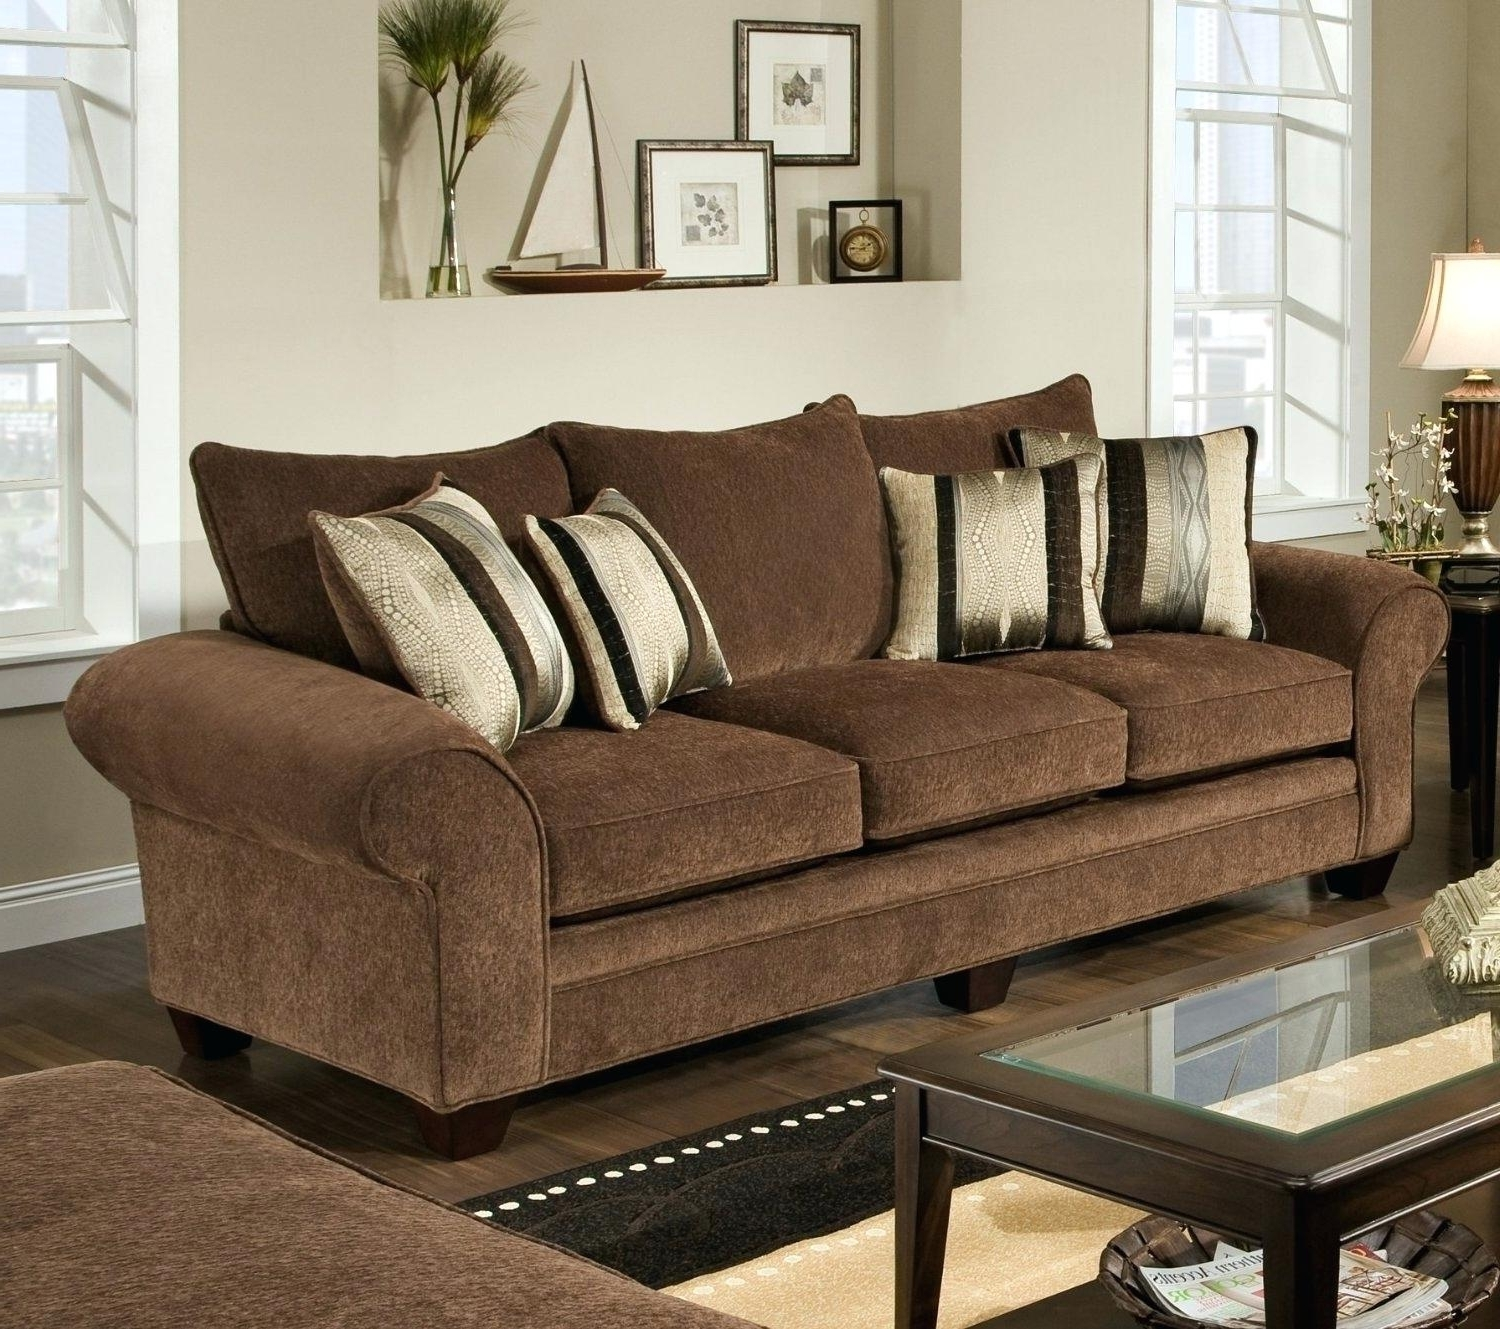 Berkline Sofa Sofas Sams Club Recliner Costco Furniture Recliners Throughout Cur Gallery 20